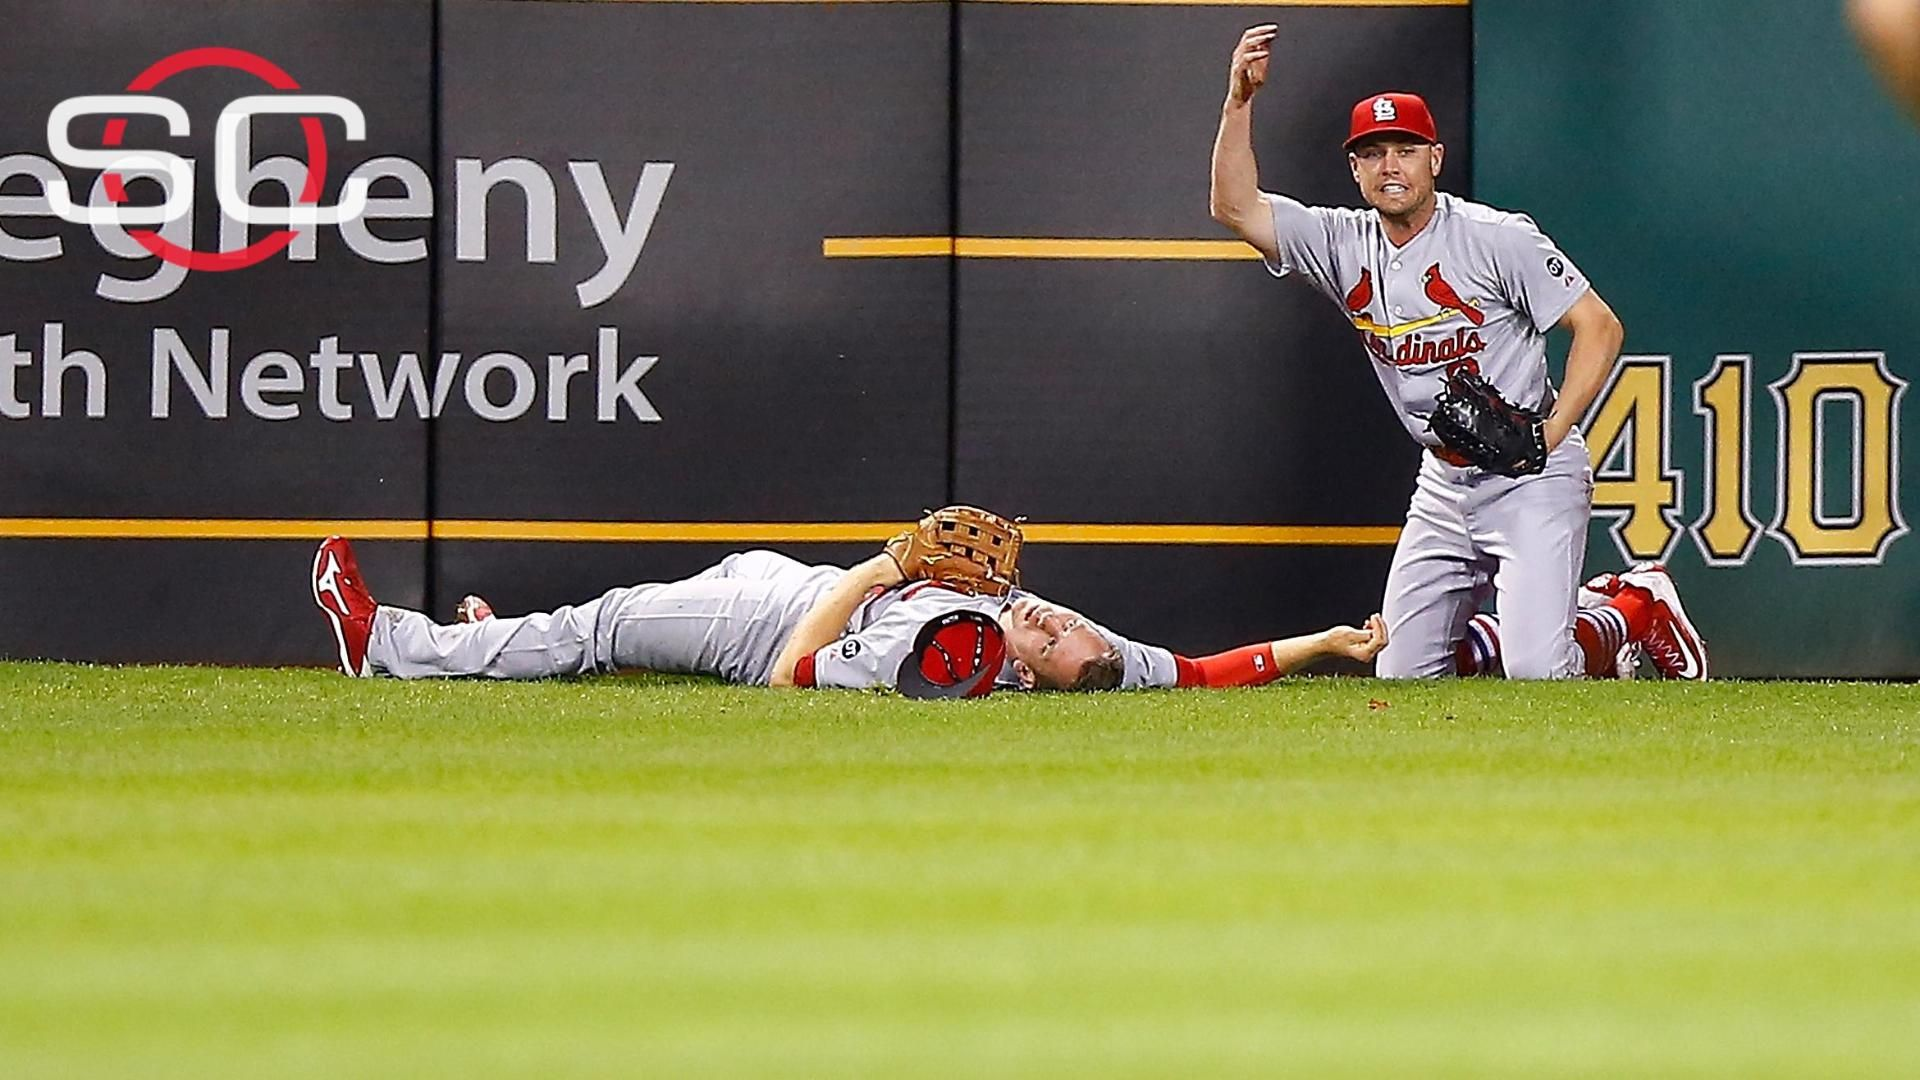 https://secure.espncdn.com/combiner/i?img=/media/motion/2015/0929/dm_150929_mlb_wedge_piscotty_injury969/dm_150929_mlb_wedge_piscotty_injury969.jpg